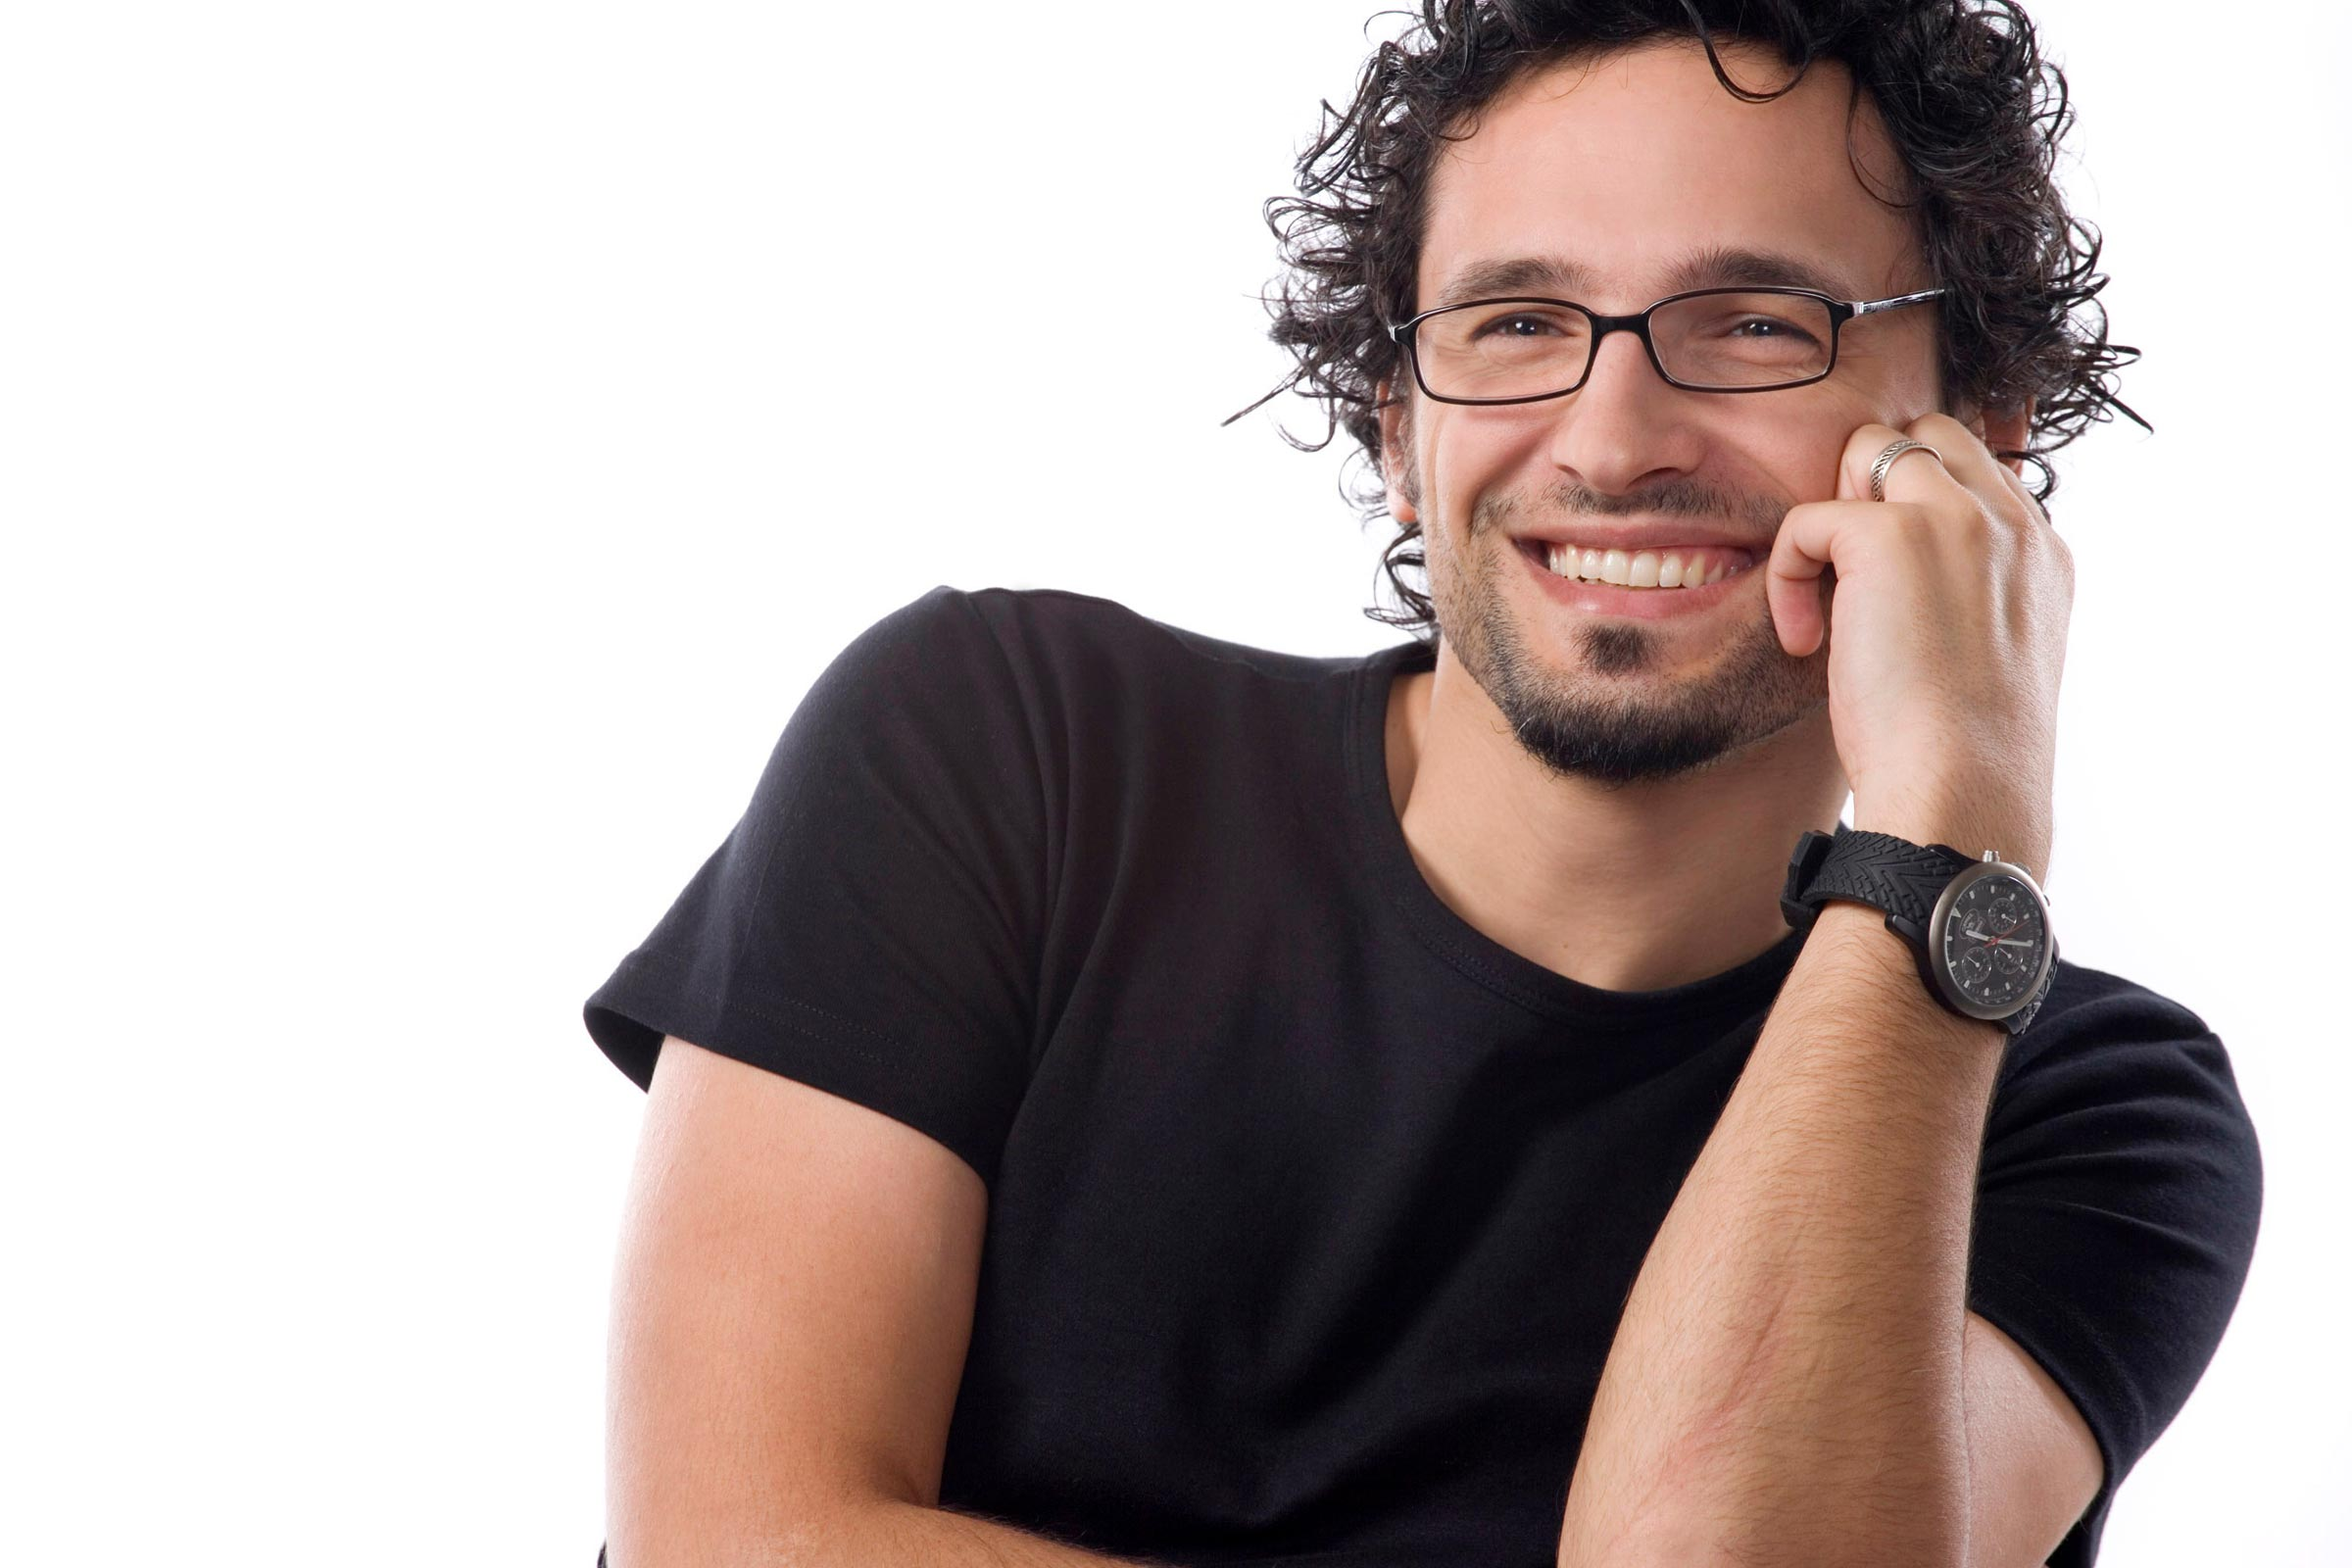 man in black t-shirt glasses and watch smiling